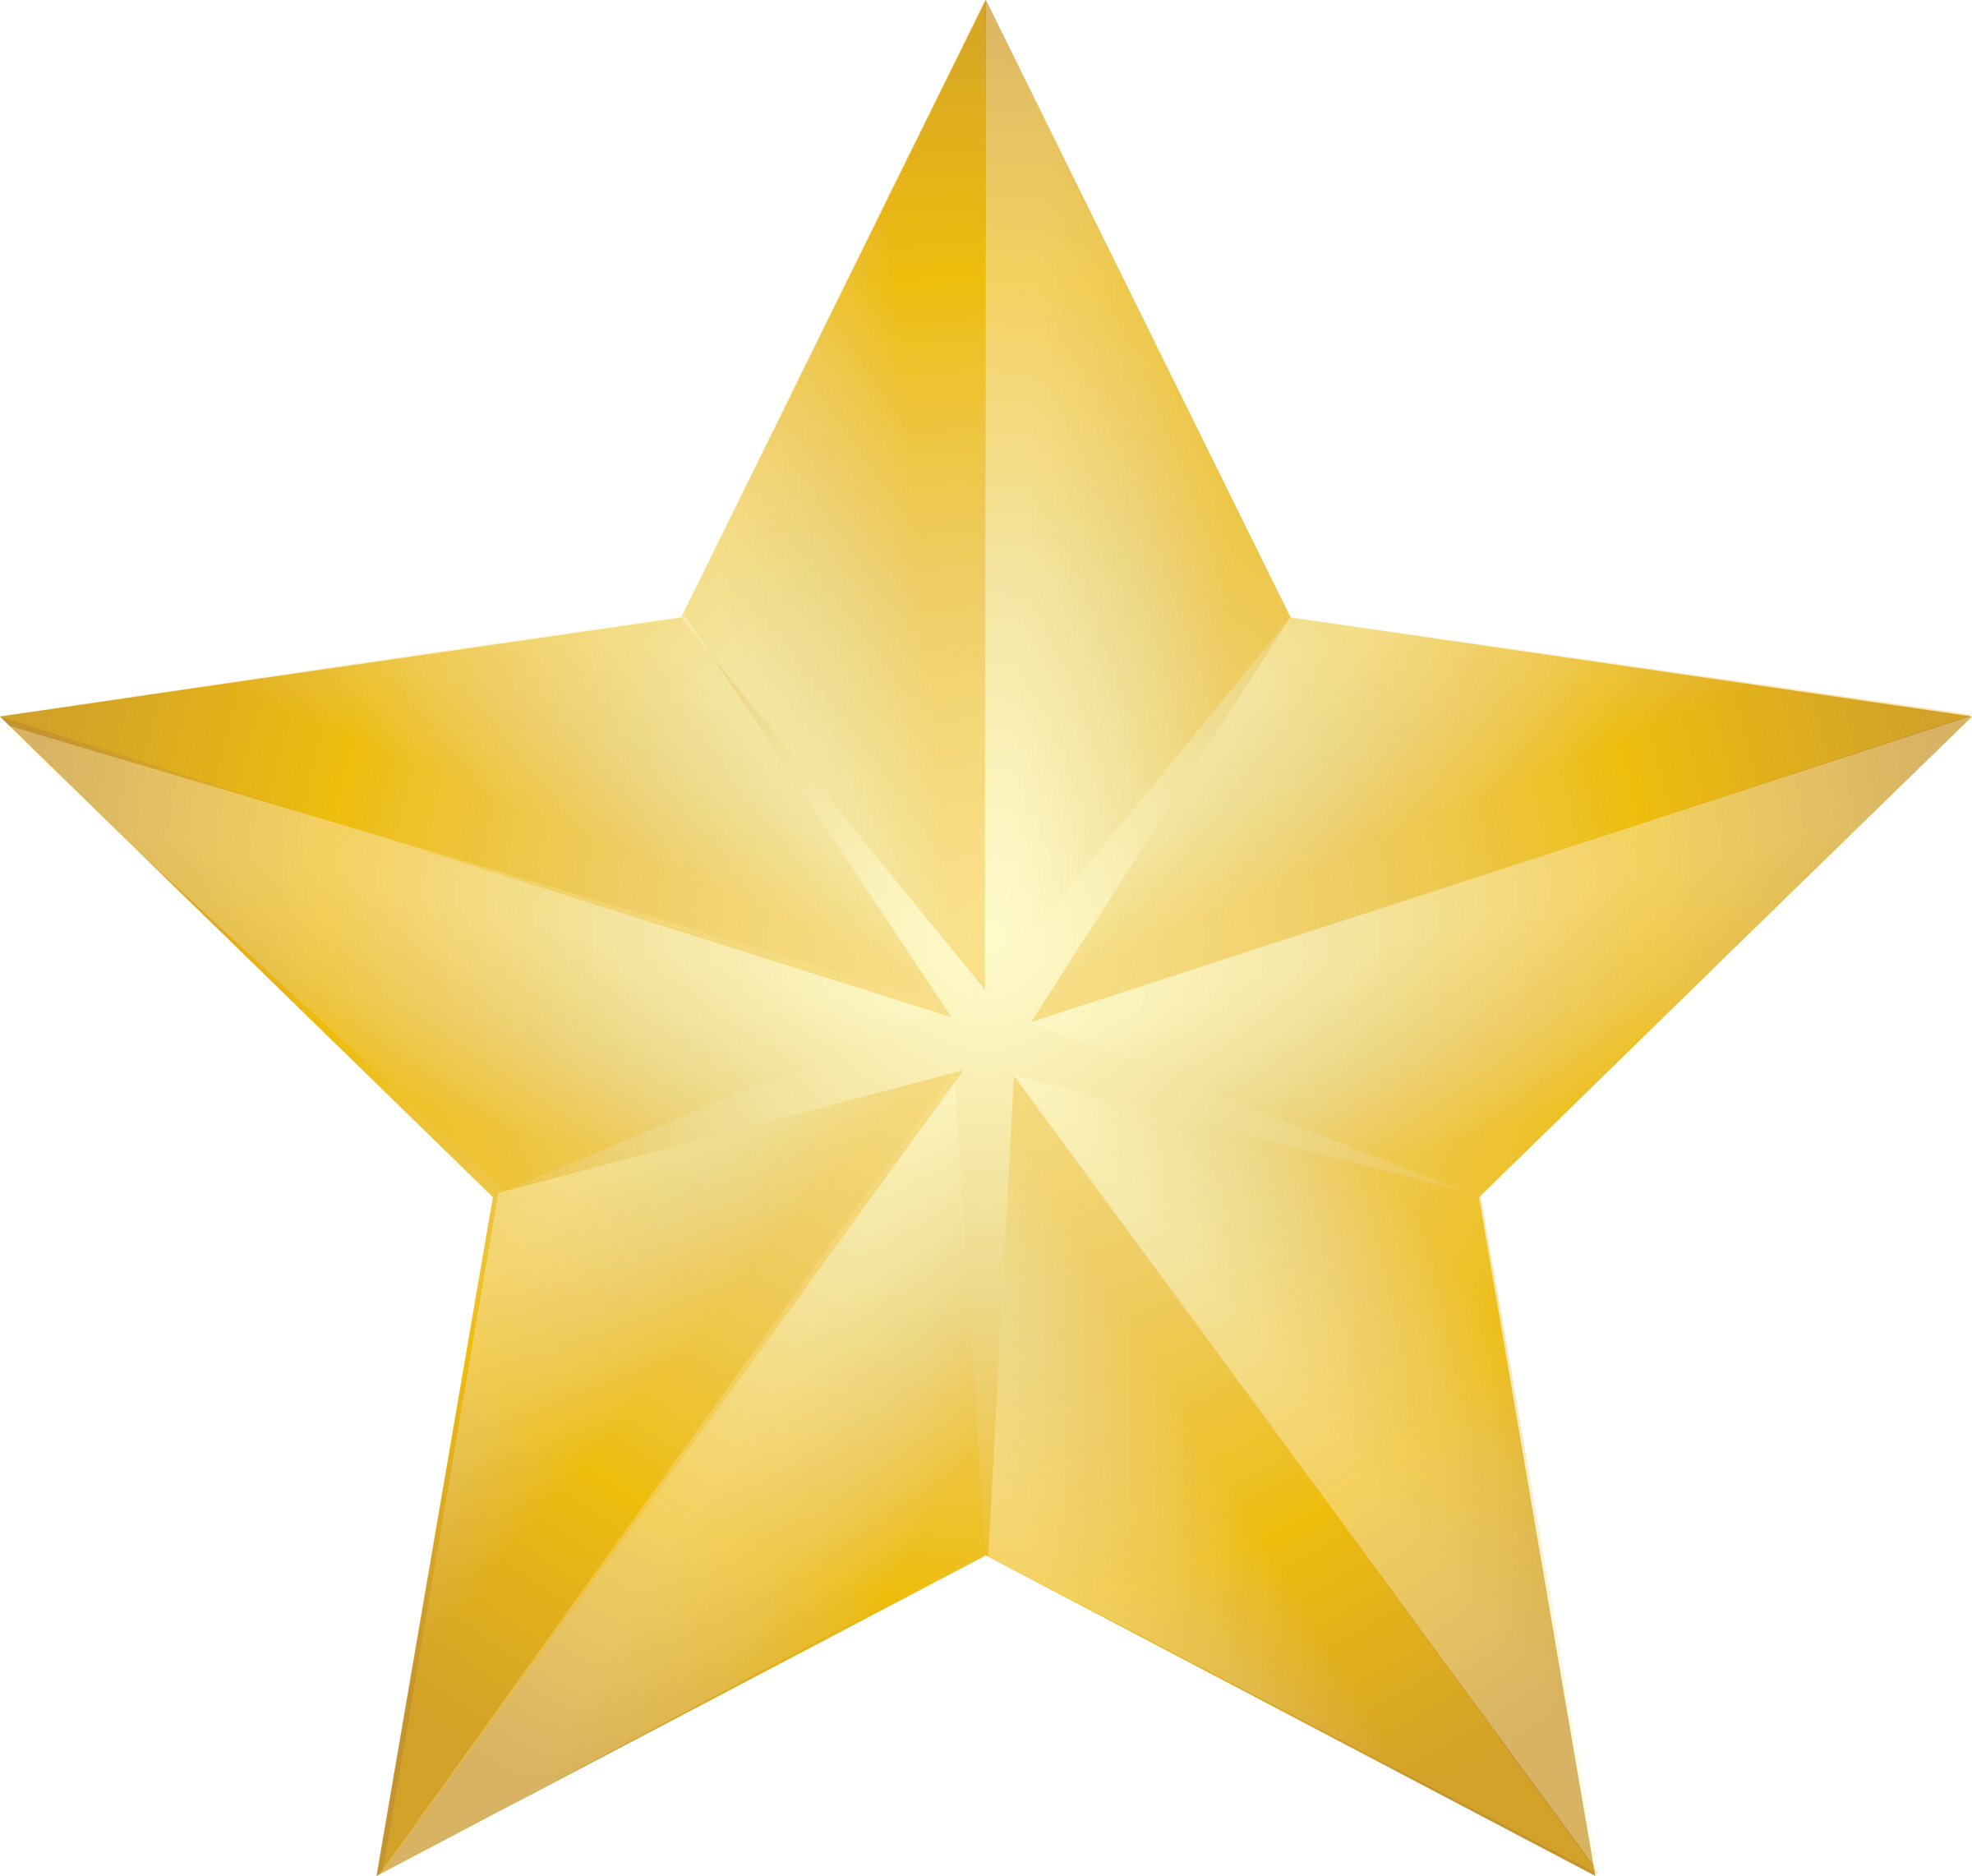 Falling Stars clipart star award Star star black clipart collection